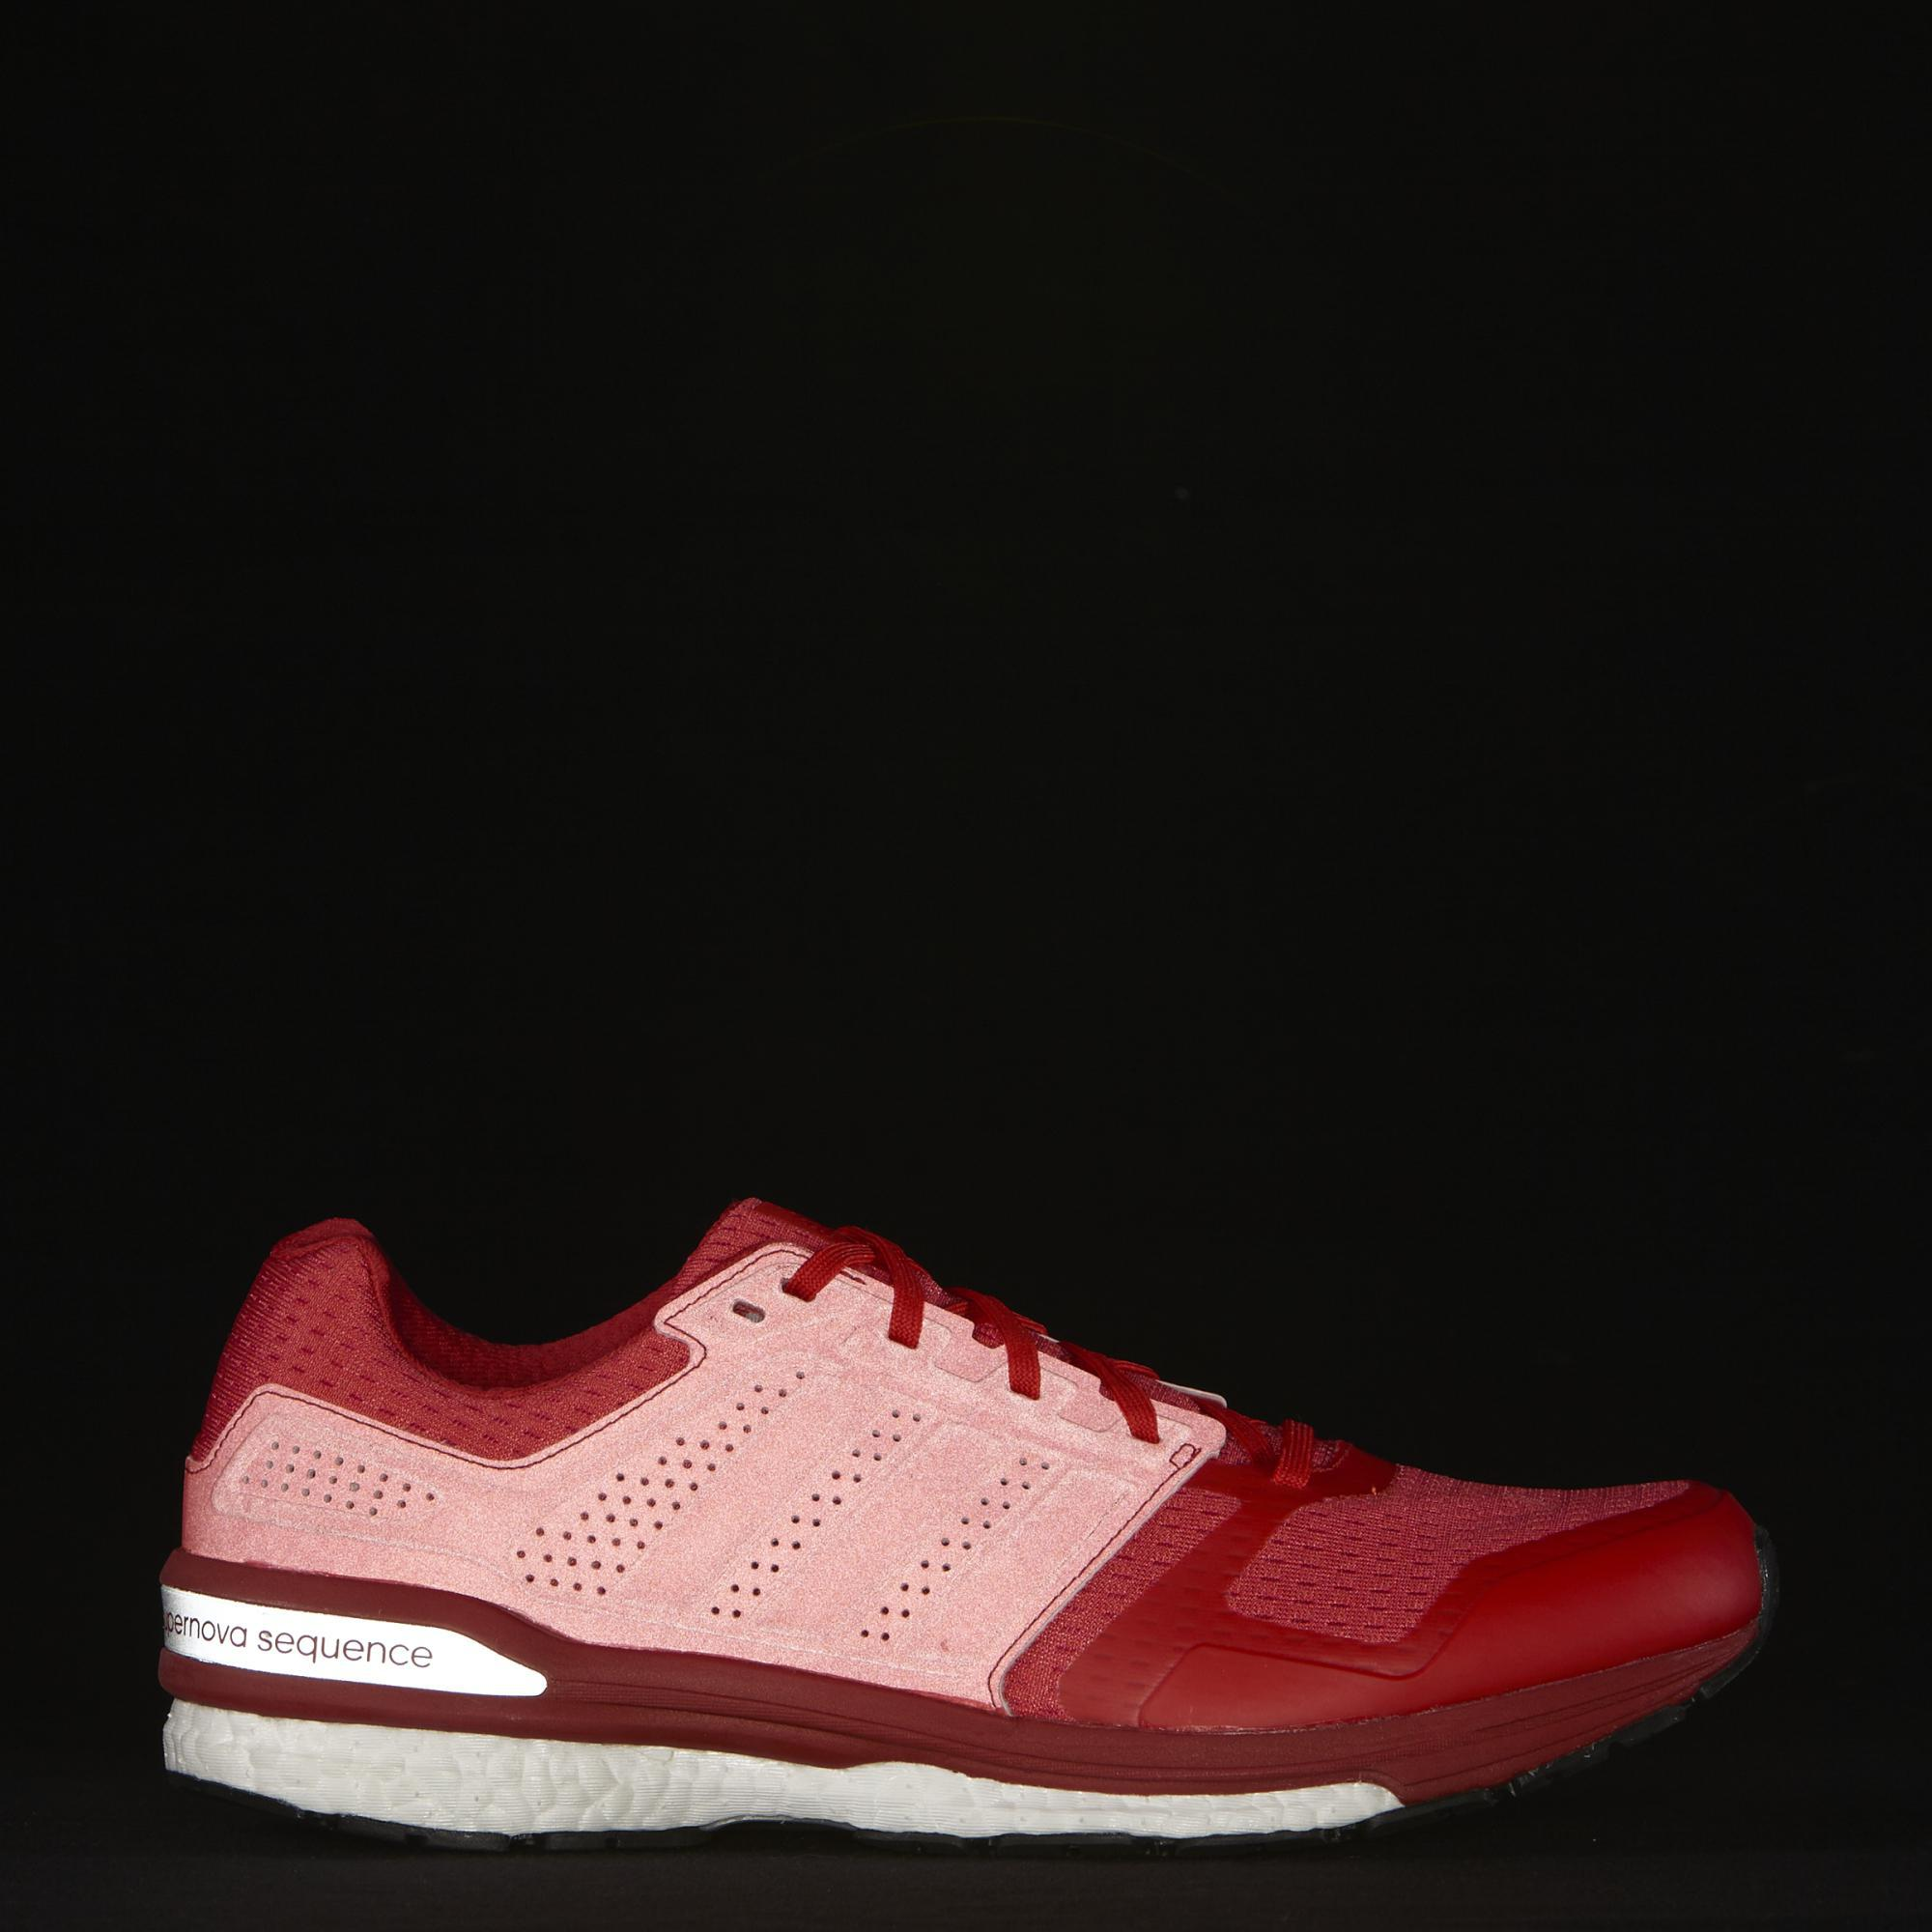 85be7ba70c3b4 Adidas Mens Supernova Sequence Boost Running Shoes - Red ...